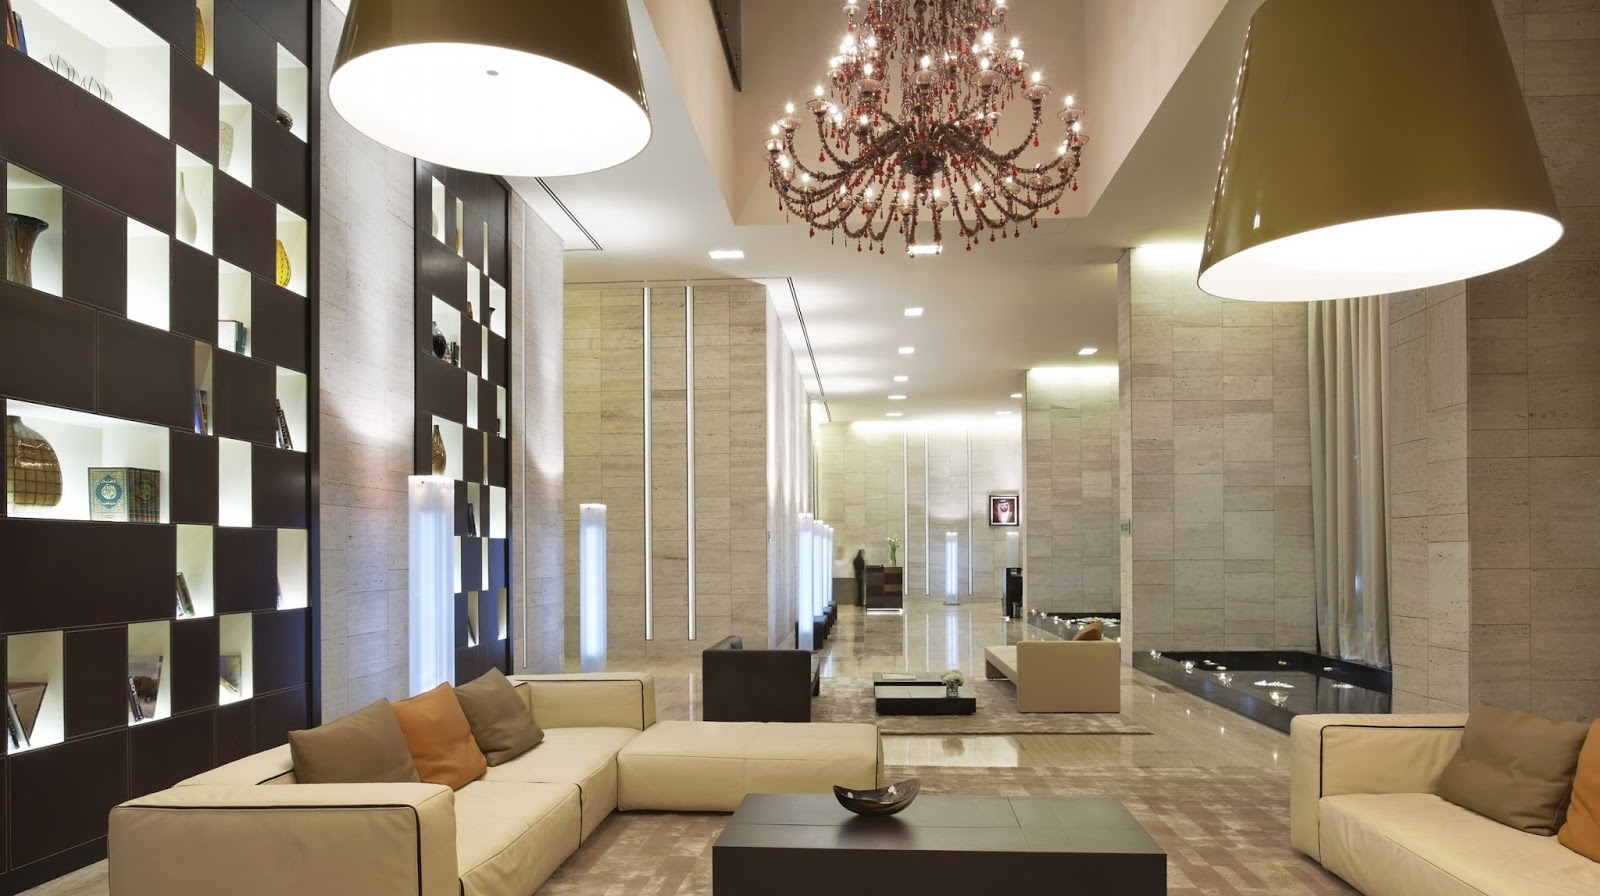 Best interior design companies and interior designers in dubai for The interior designer